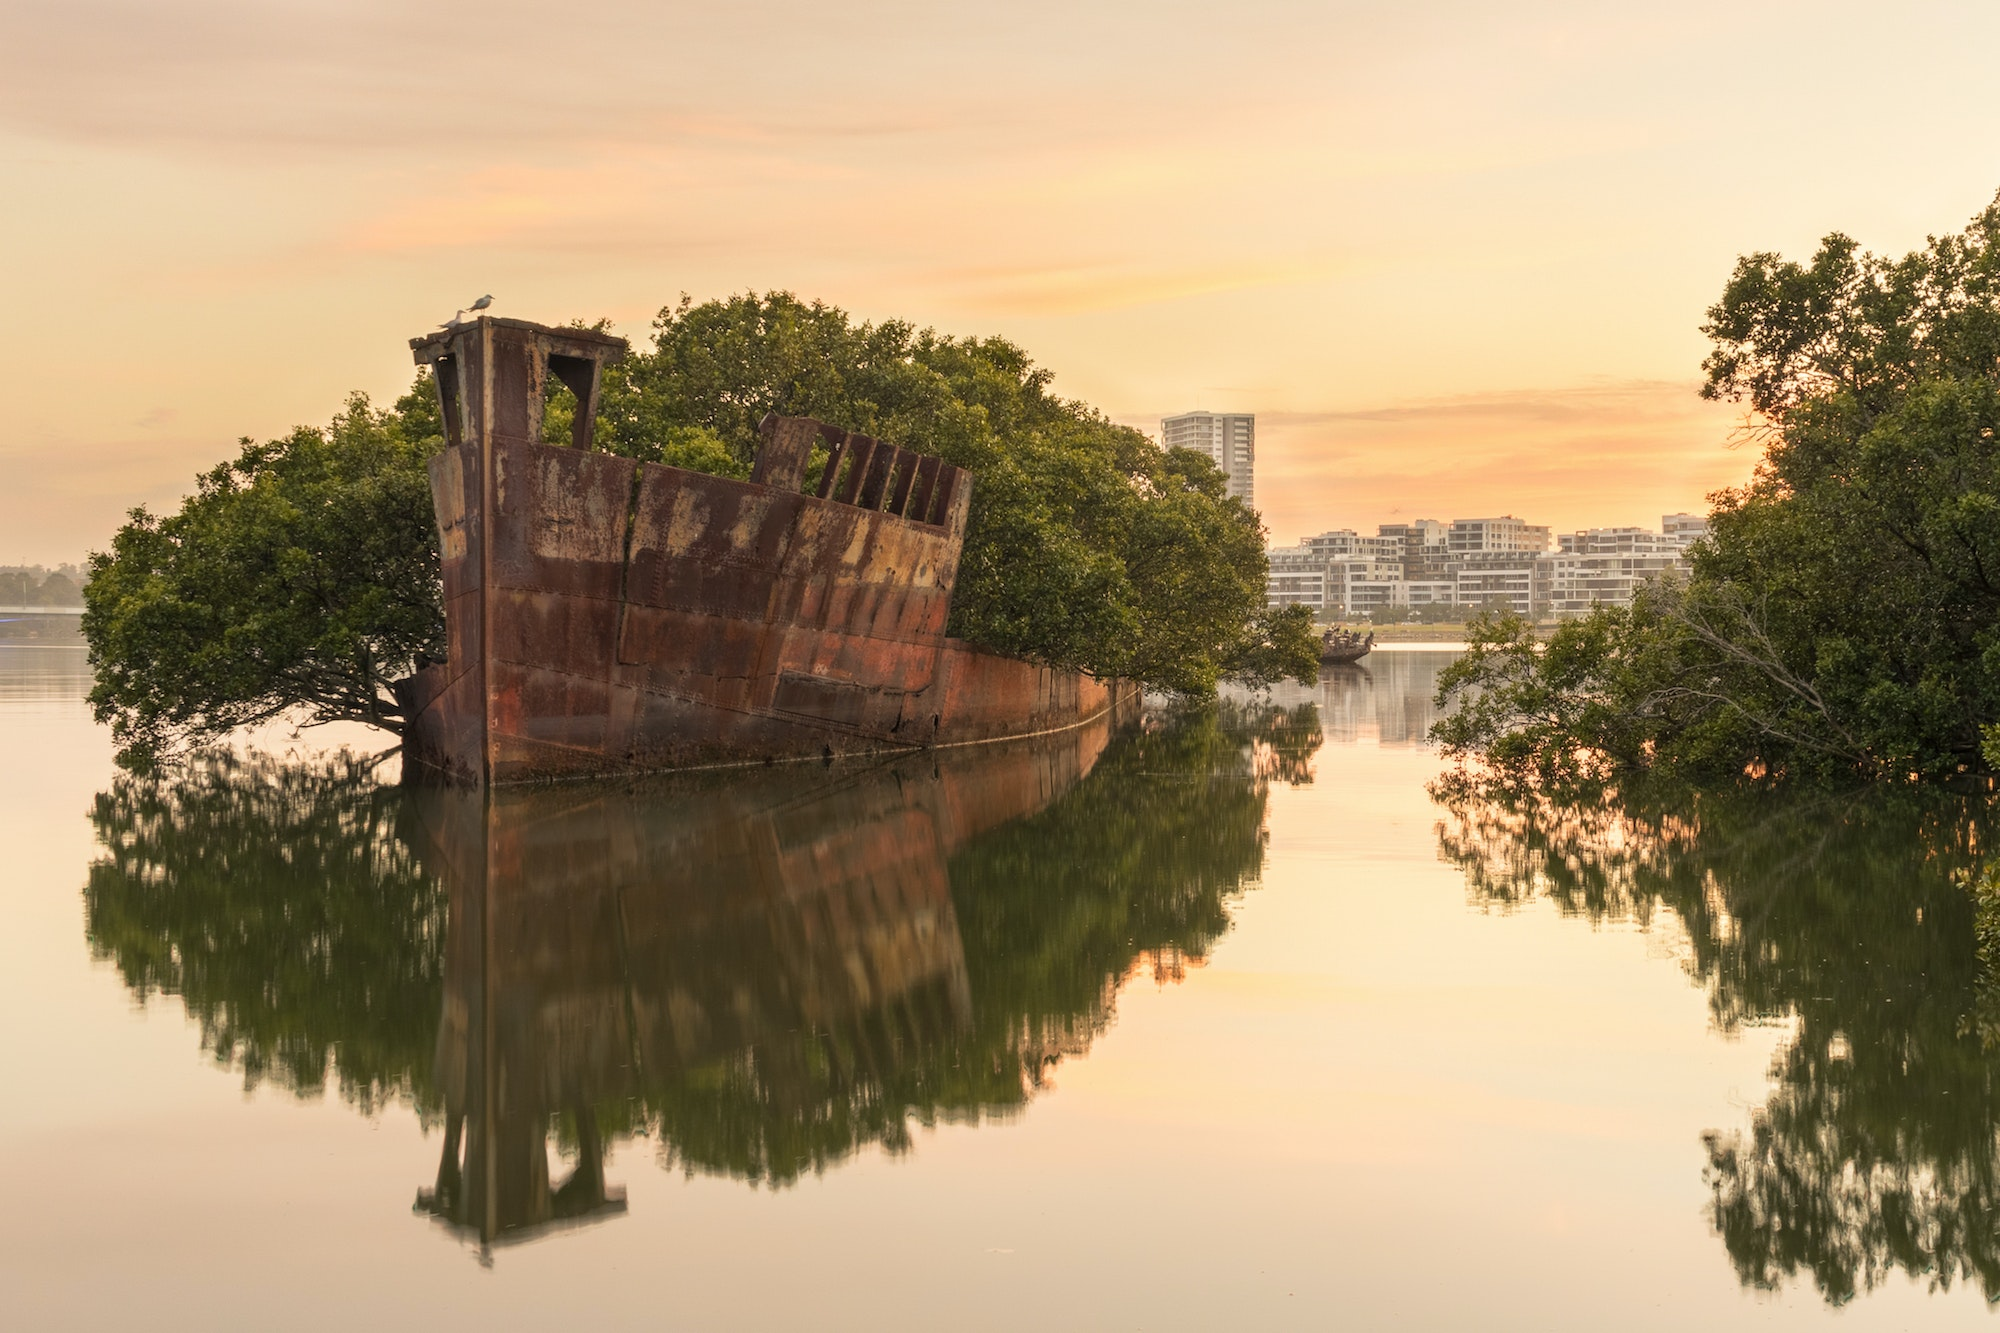 Homebush Bay is located on the south bank of the Parramatta River in the Inner West of Sydney, Australia.